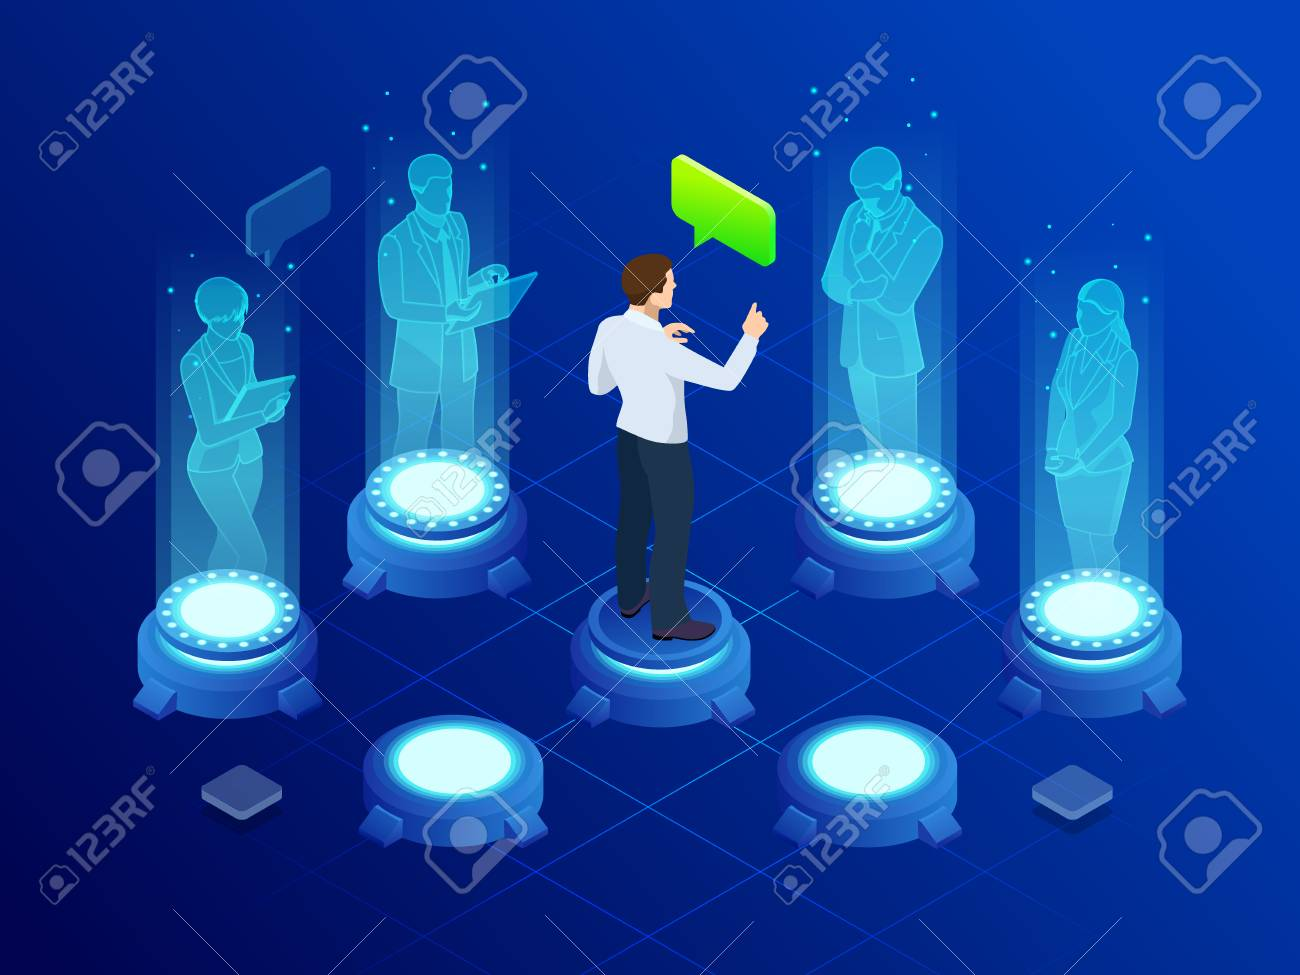 Isometric man communicates with abstract futuristic screen holograms. Business conference. The concept of network, communication, business, technology, augmented reality. - 110081473